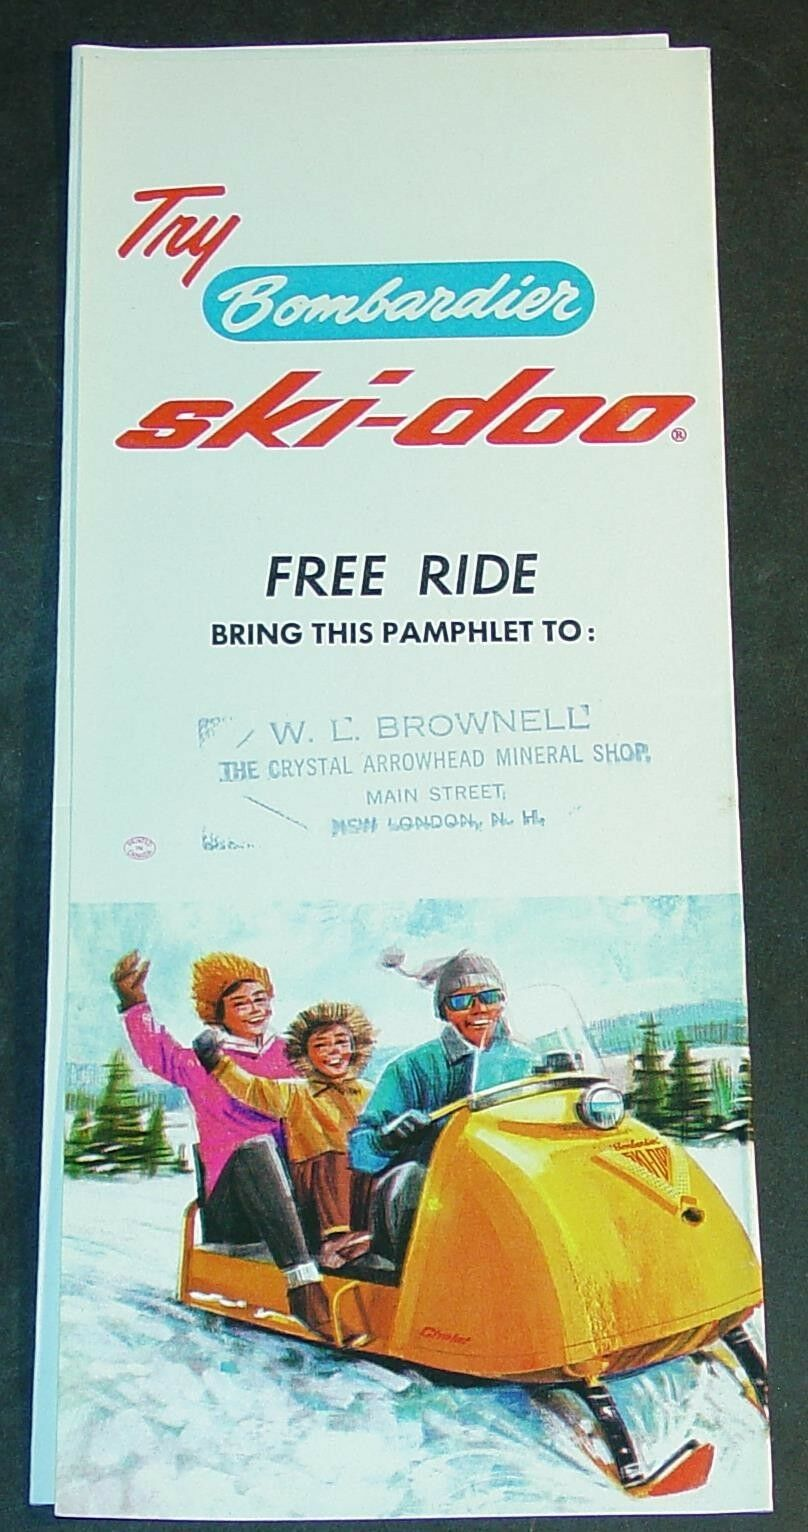 RARE VINTAGE 1965 SKI-DOO SNOWMOBILE TRI-FOLD SALES BROCHURE  (731)   best-selling